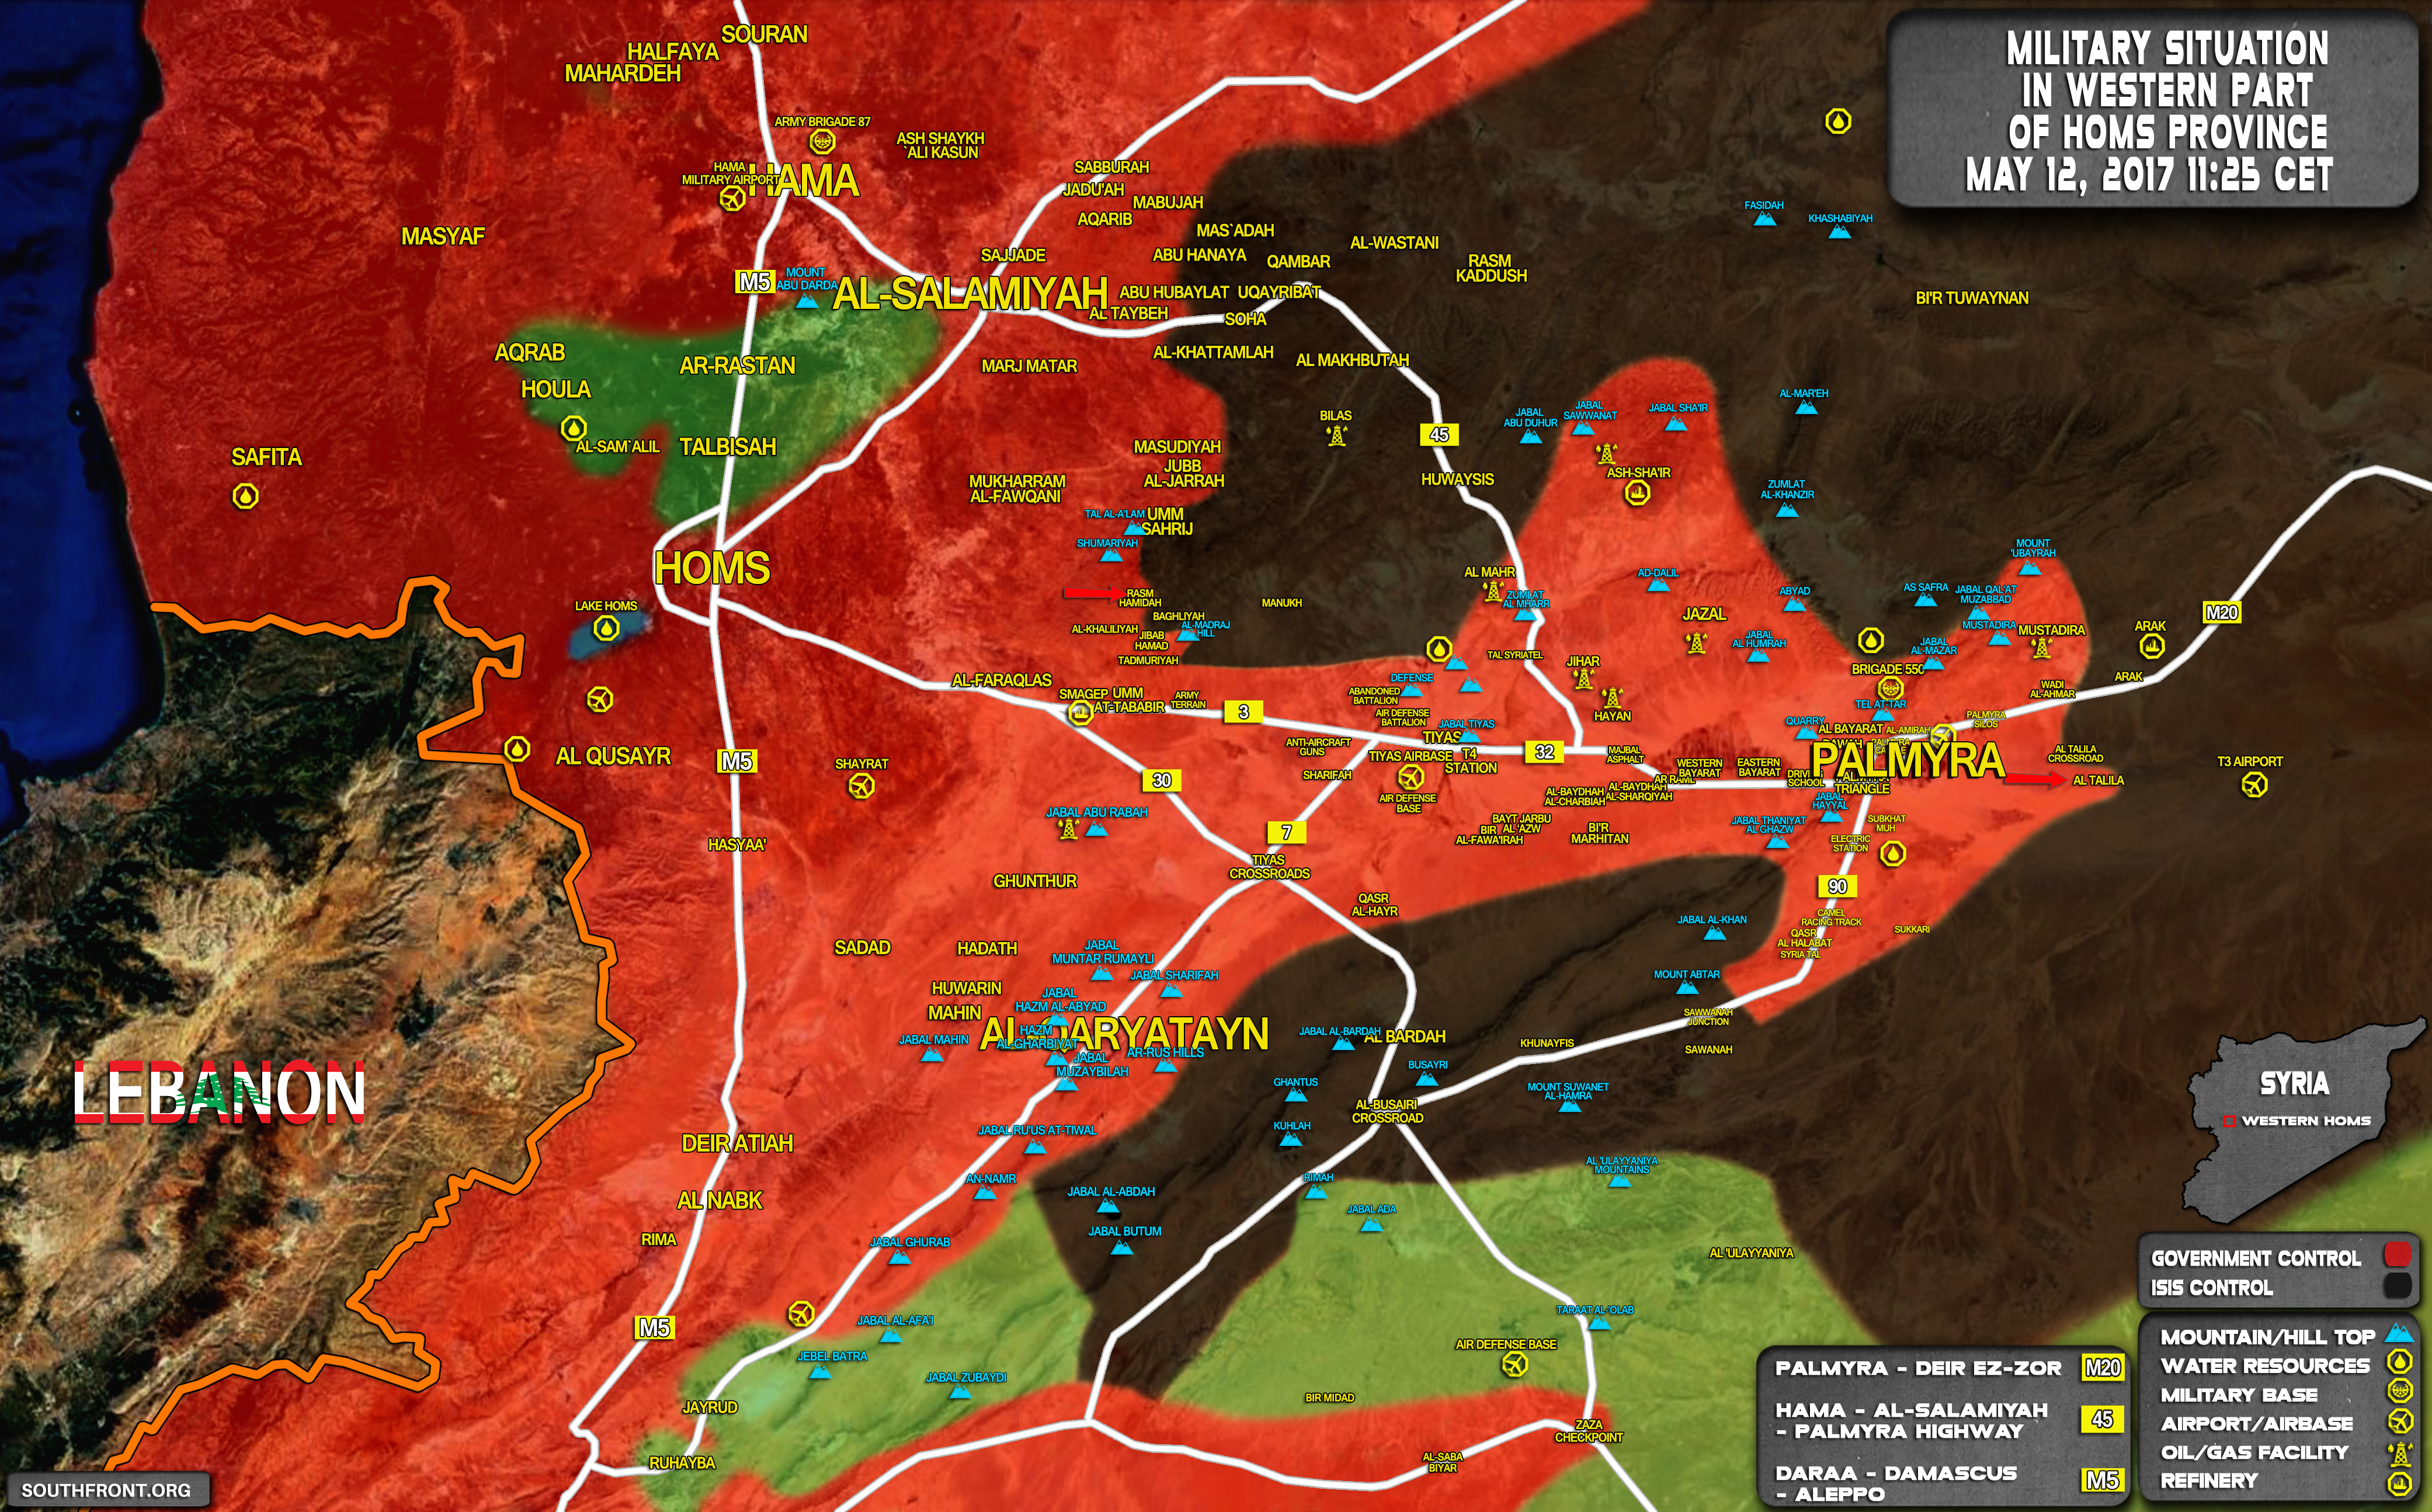 Syrian Army Troops Advanced East Of Palmyra (Map)